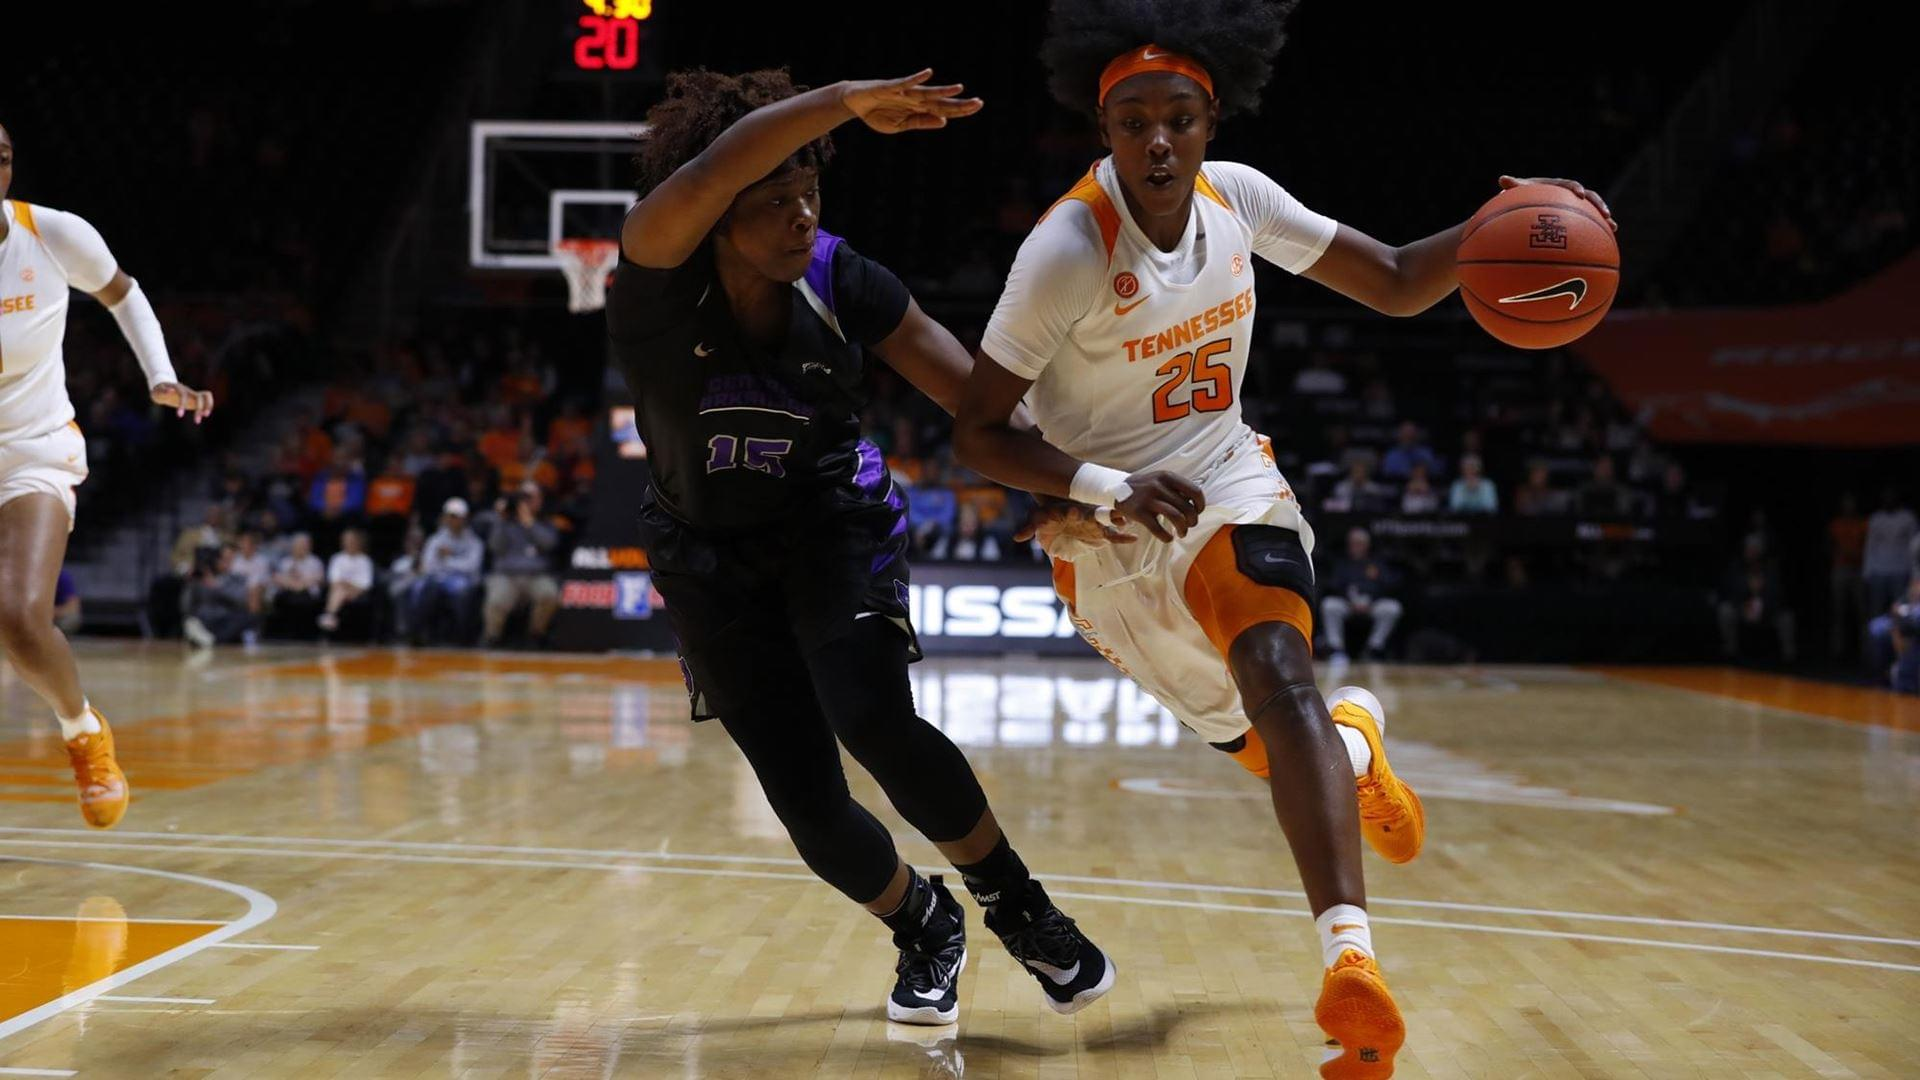 Lady Vols Beat UCA In Home Opener, 63-36.